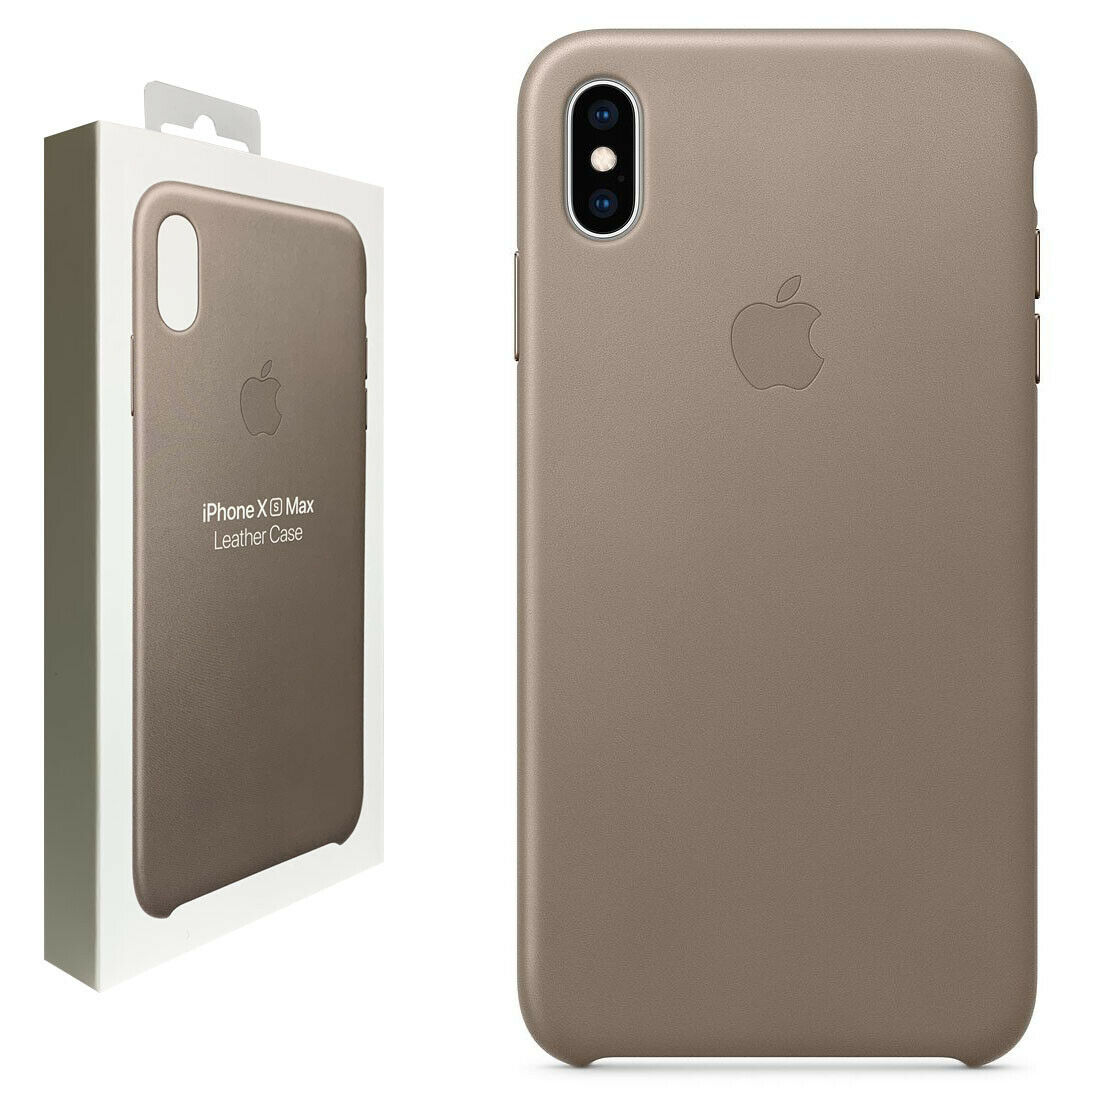 Apple iPhone XS Max Leather Case Taupe -MRWR2ZM A